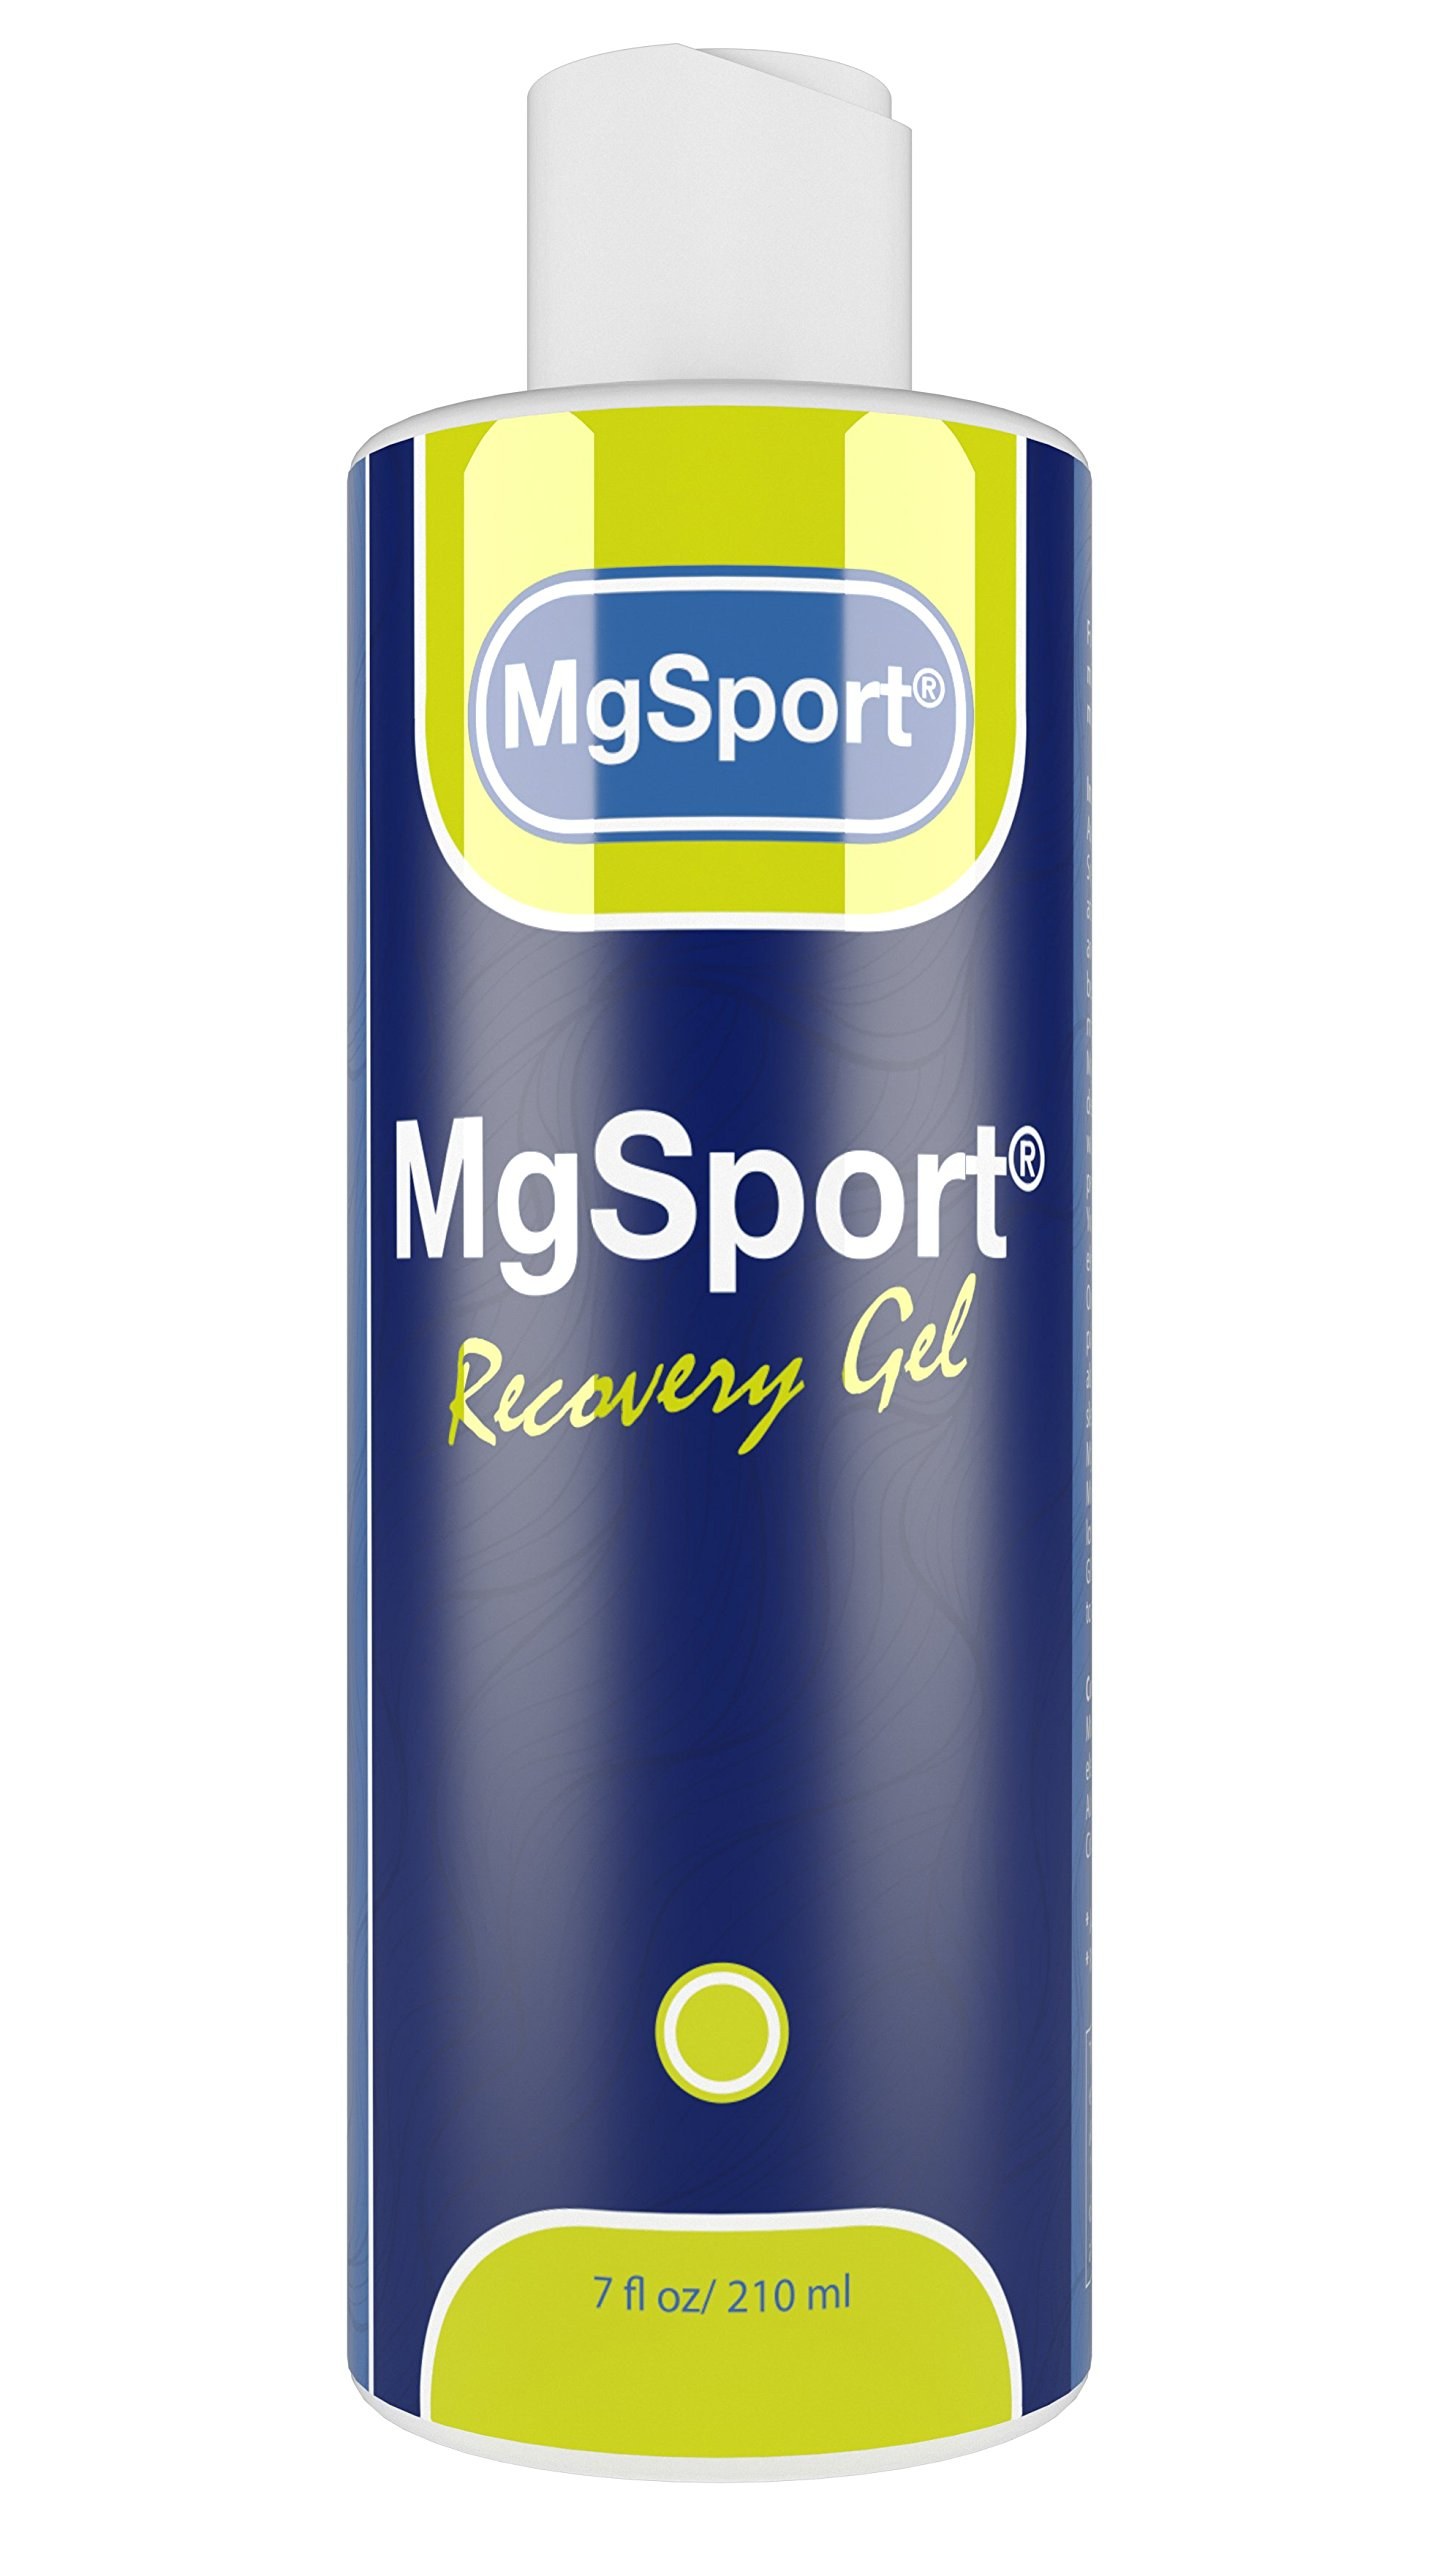 High Absorption Magnesium Gel for Leg Cramps - 7 oz. Recovery Gel from The Dead Sea for Sore Muscles and Restless Leg Syndrome - Less Itch & Less Sting Than Magnesium Oil